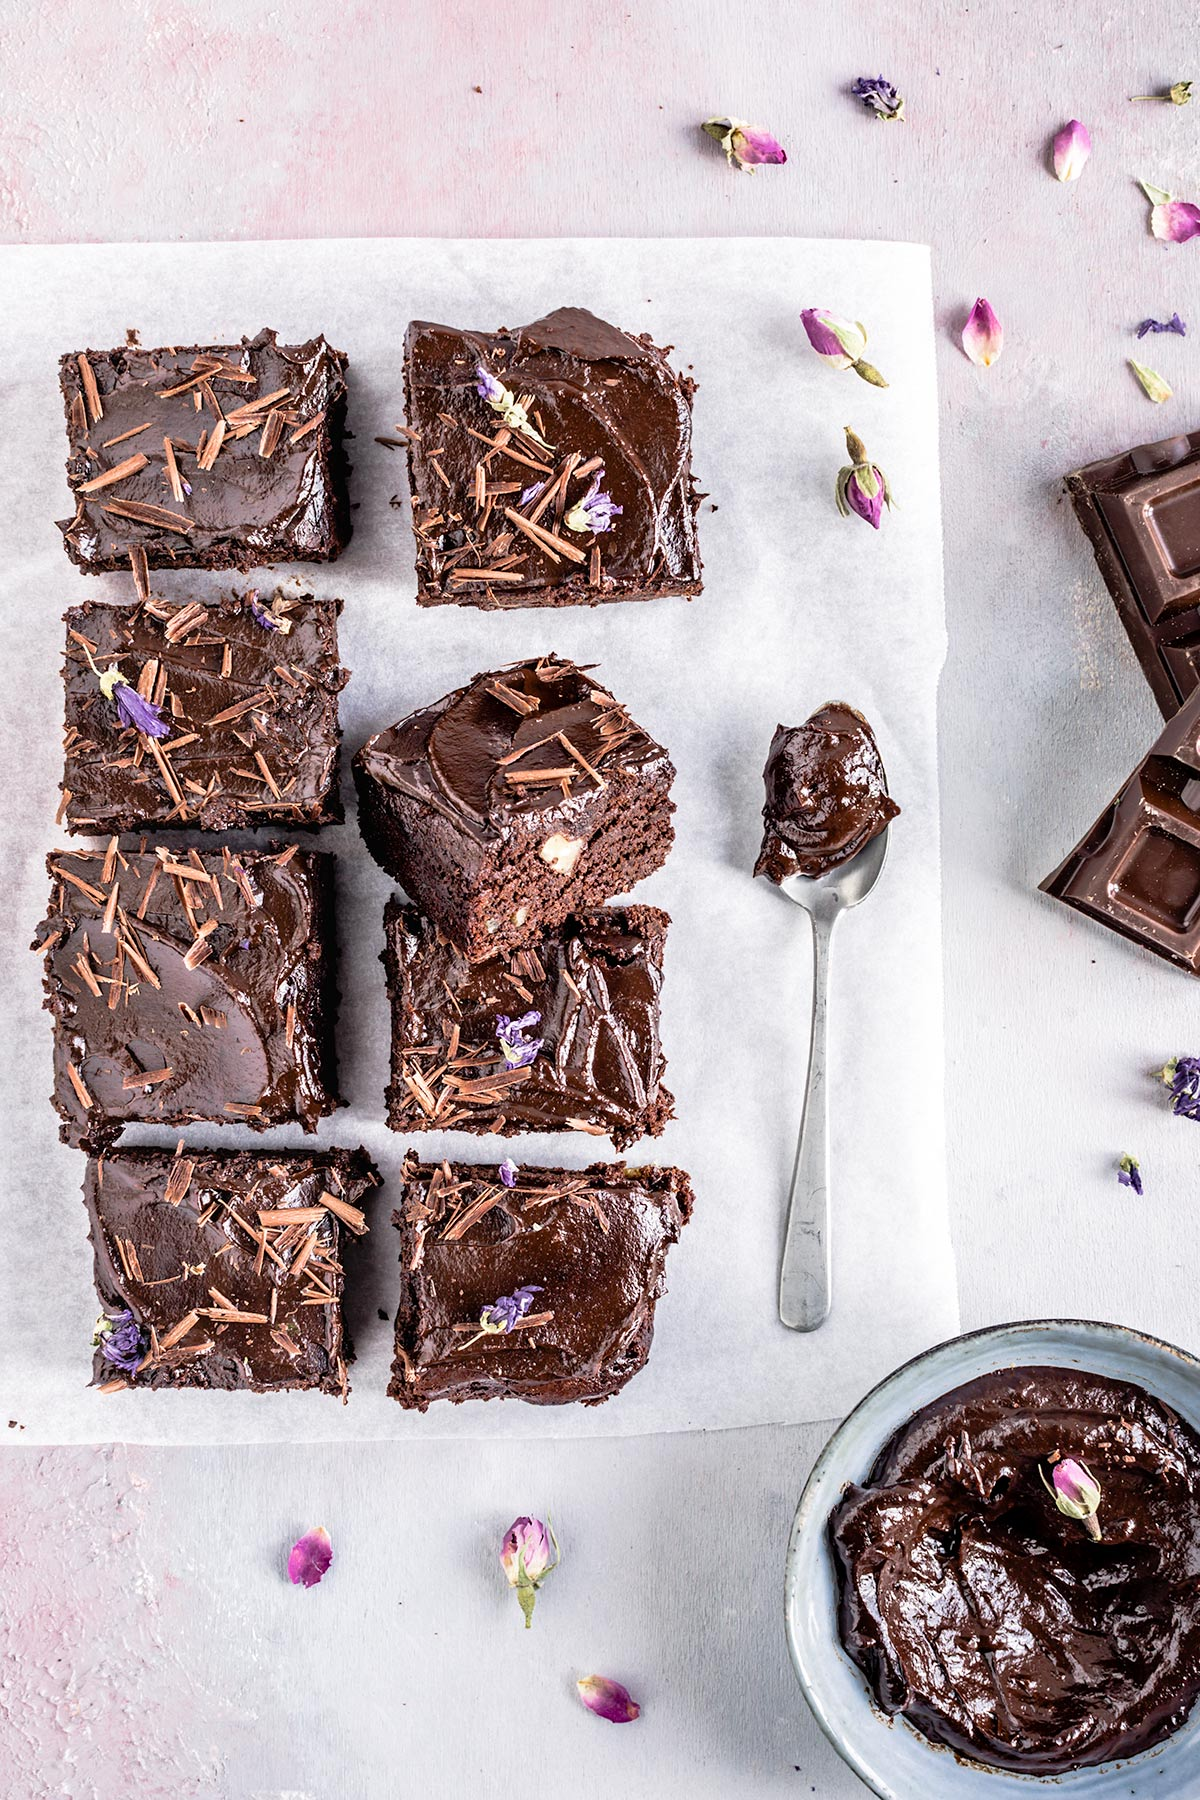 simple healthy VEGAN GLUTENFREE BROWNIES recipe with espresso coffee and coconut milk ricetta BROWNIES VEGAN SENZA GLUTINE facili light sani senza farine raffinate senza zuccheri raffinati